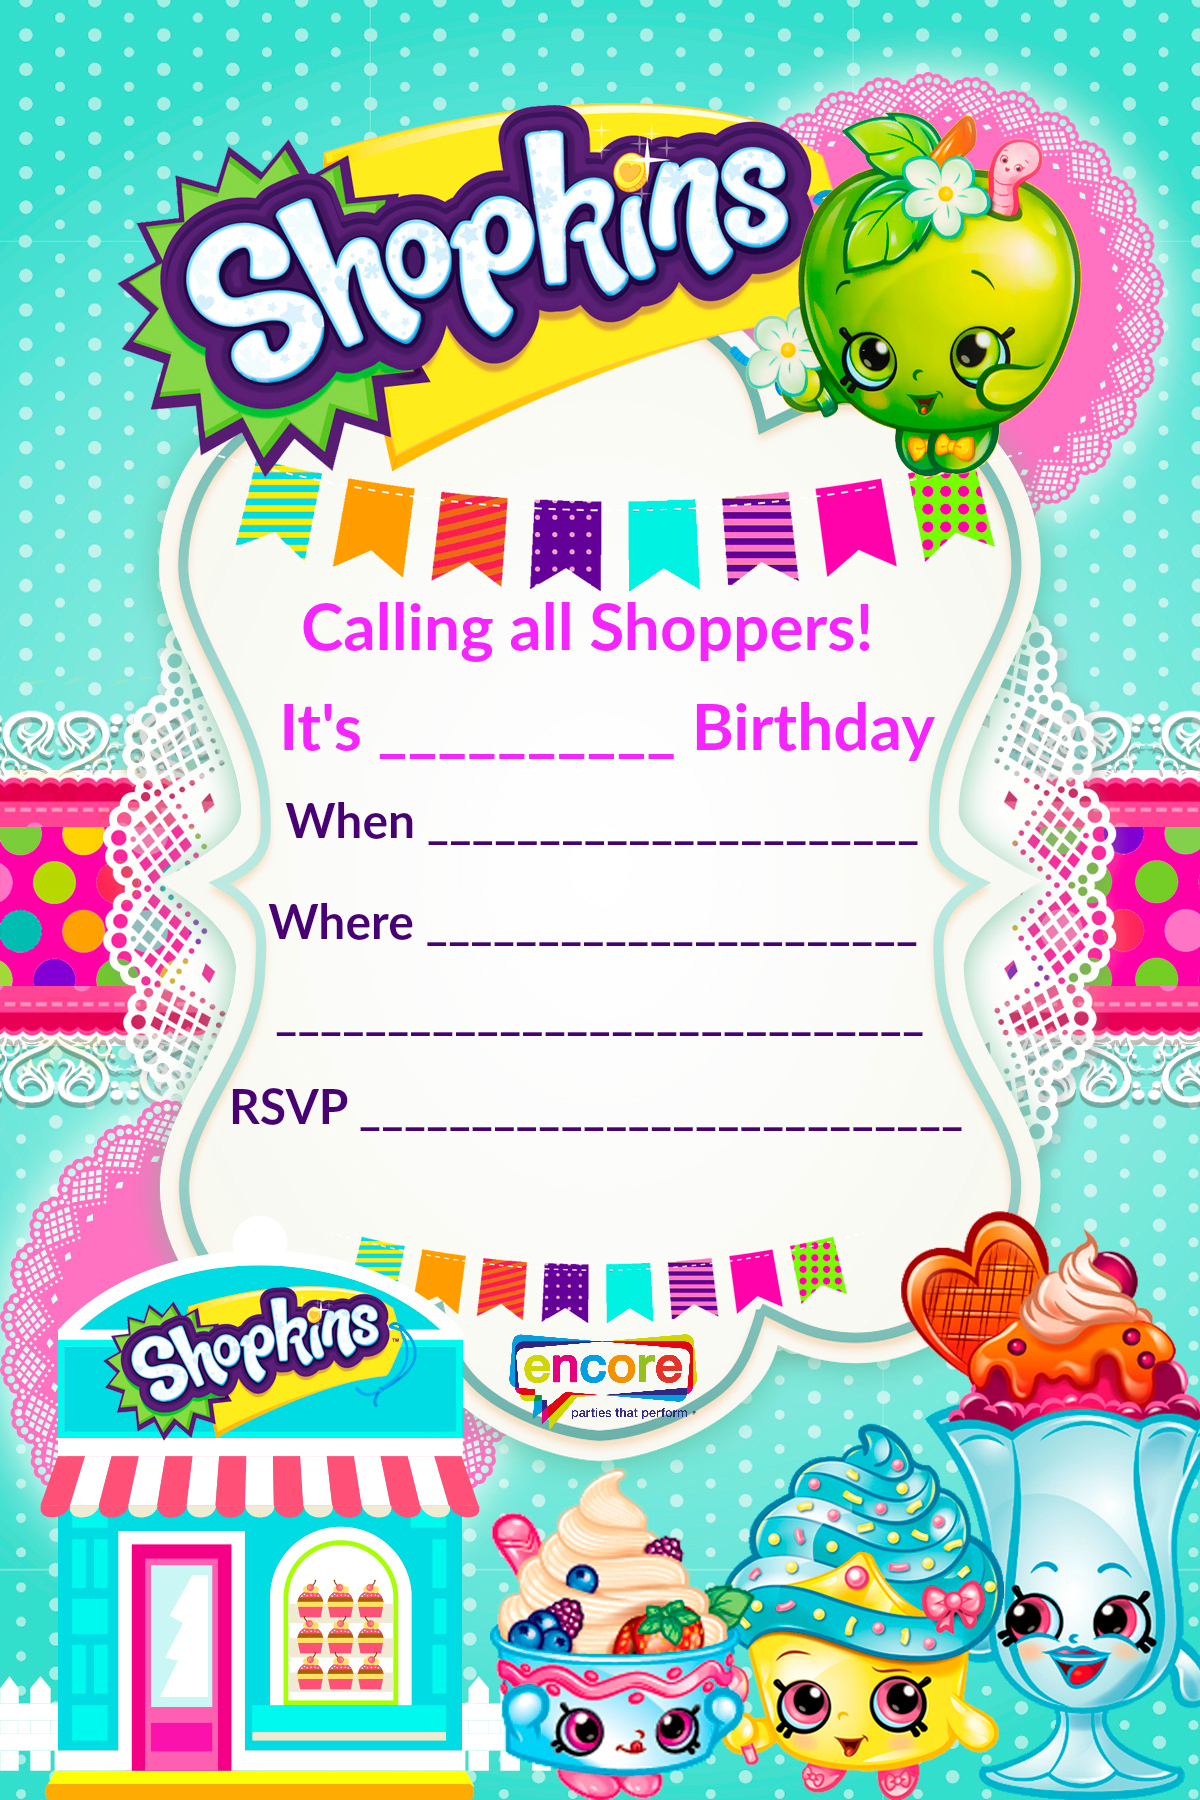 Shopkins party invite download free encore kids parties shopkins party invite download free filmwisefo